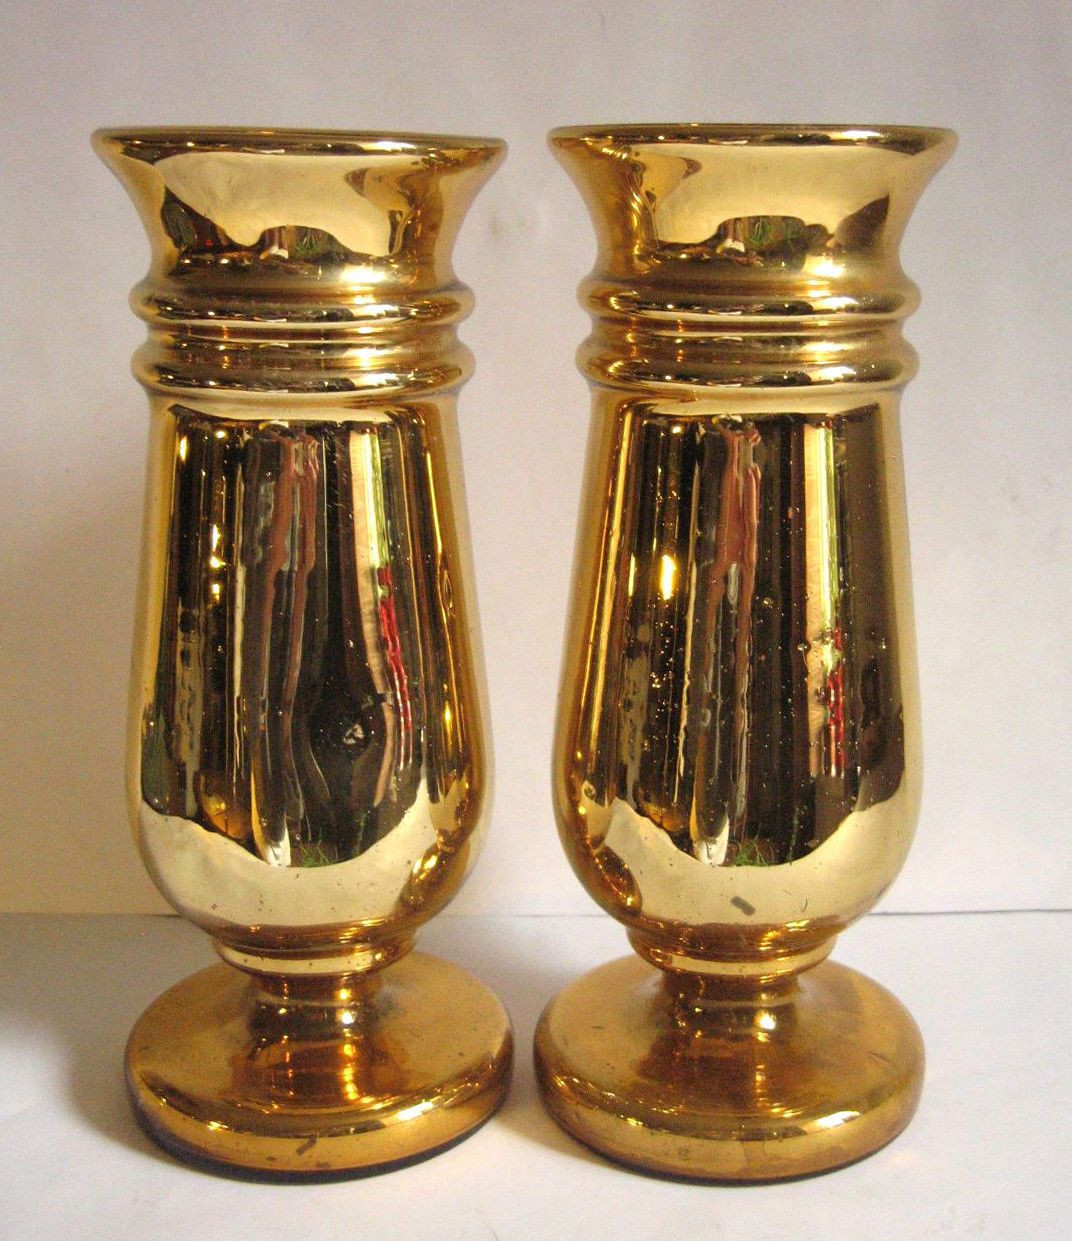 small antique glass vases of unique gold mercury glass vases bogekompresorturkiye com regarding antique mercury glass vase pair gold original ebay